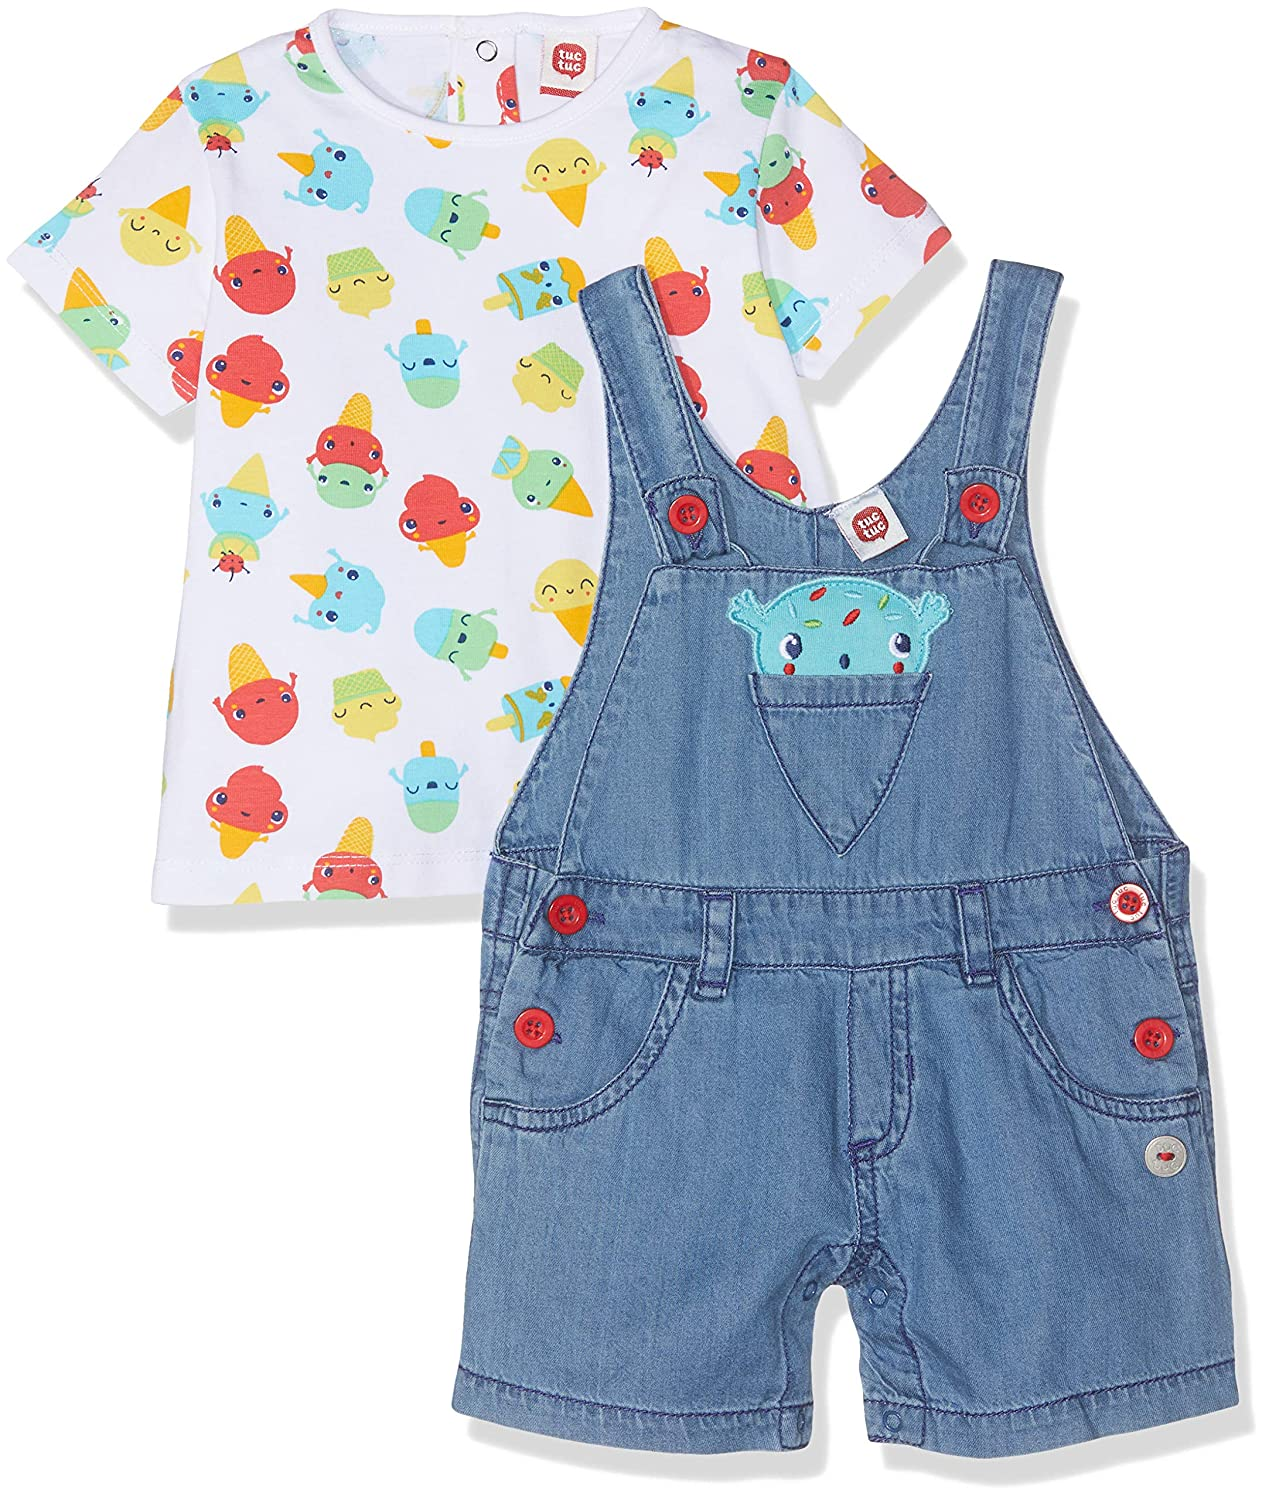 bda4cb3b2 Tuc Tuc Baby Boys' Dungarees: Amazon.co.uk: Clothing